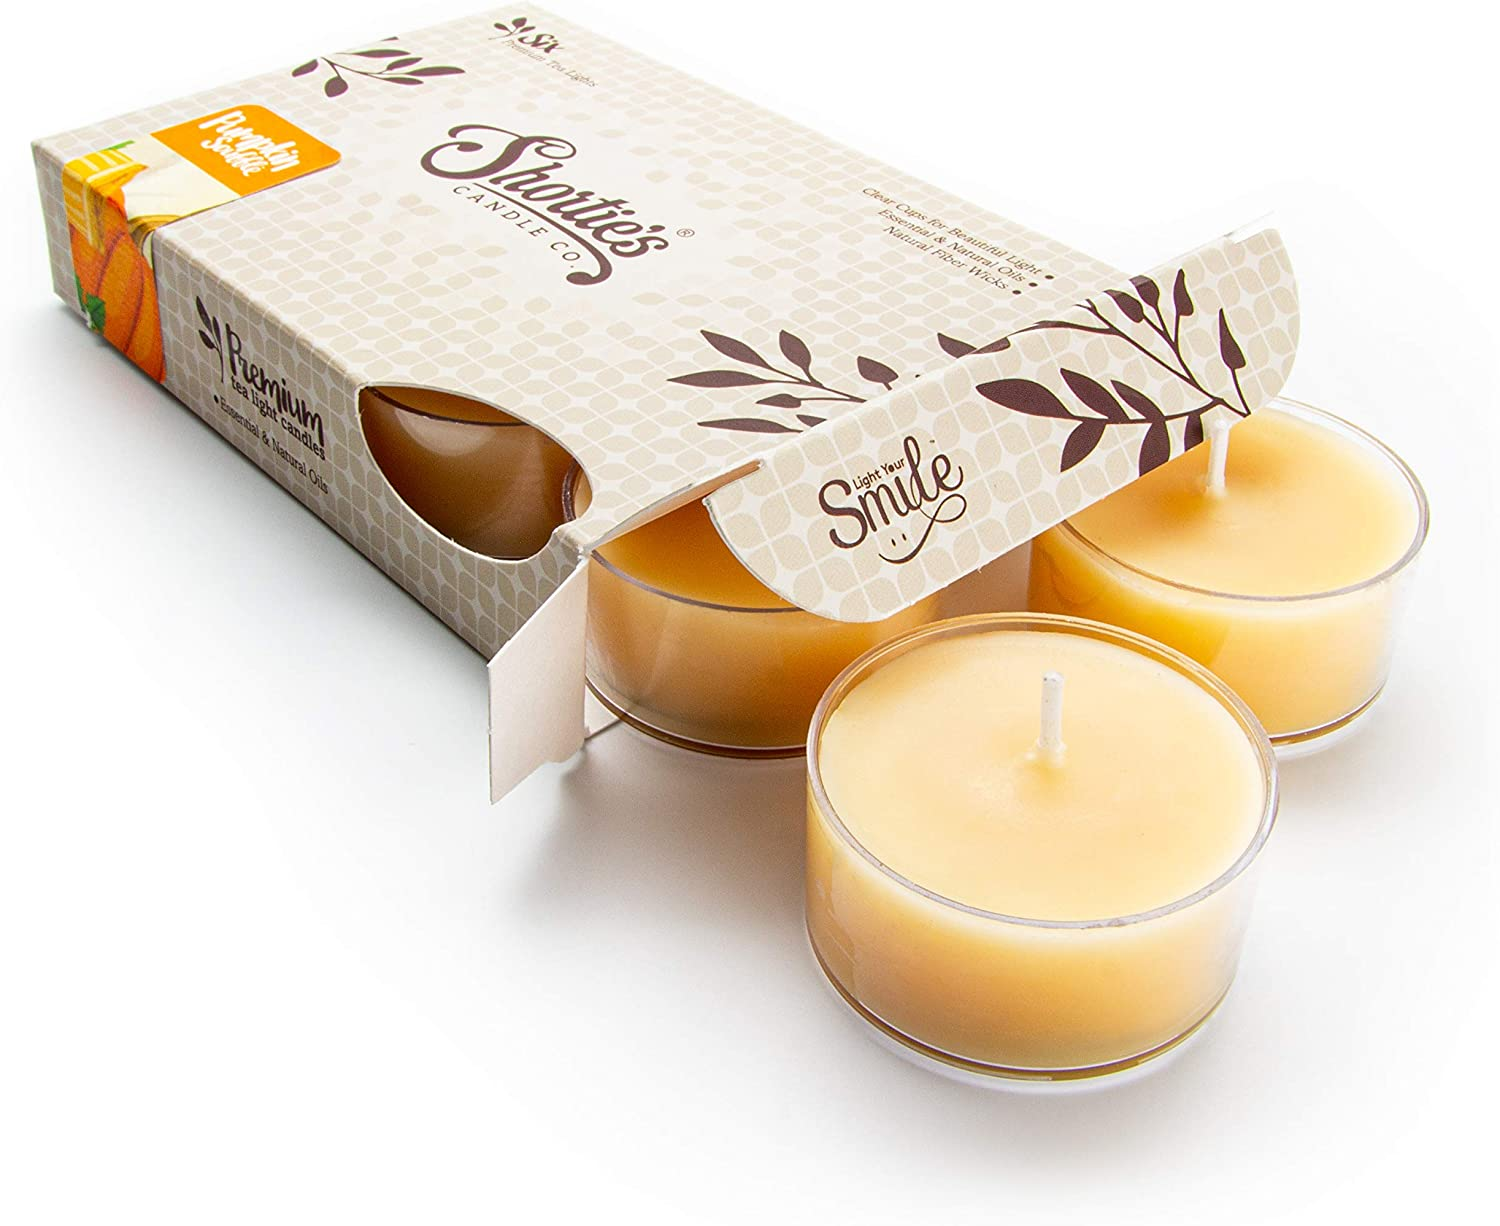 Pumpkin Souffle Tealight Candles - Highly Scented with Natural Oils - 6 Beige Hand Poured Tea Lights - Clear Container for Beautiful Candlelight - Bakery & Food Collection